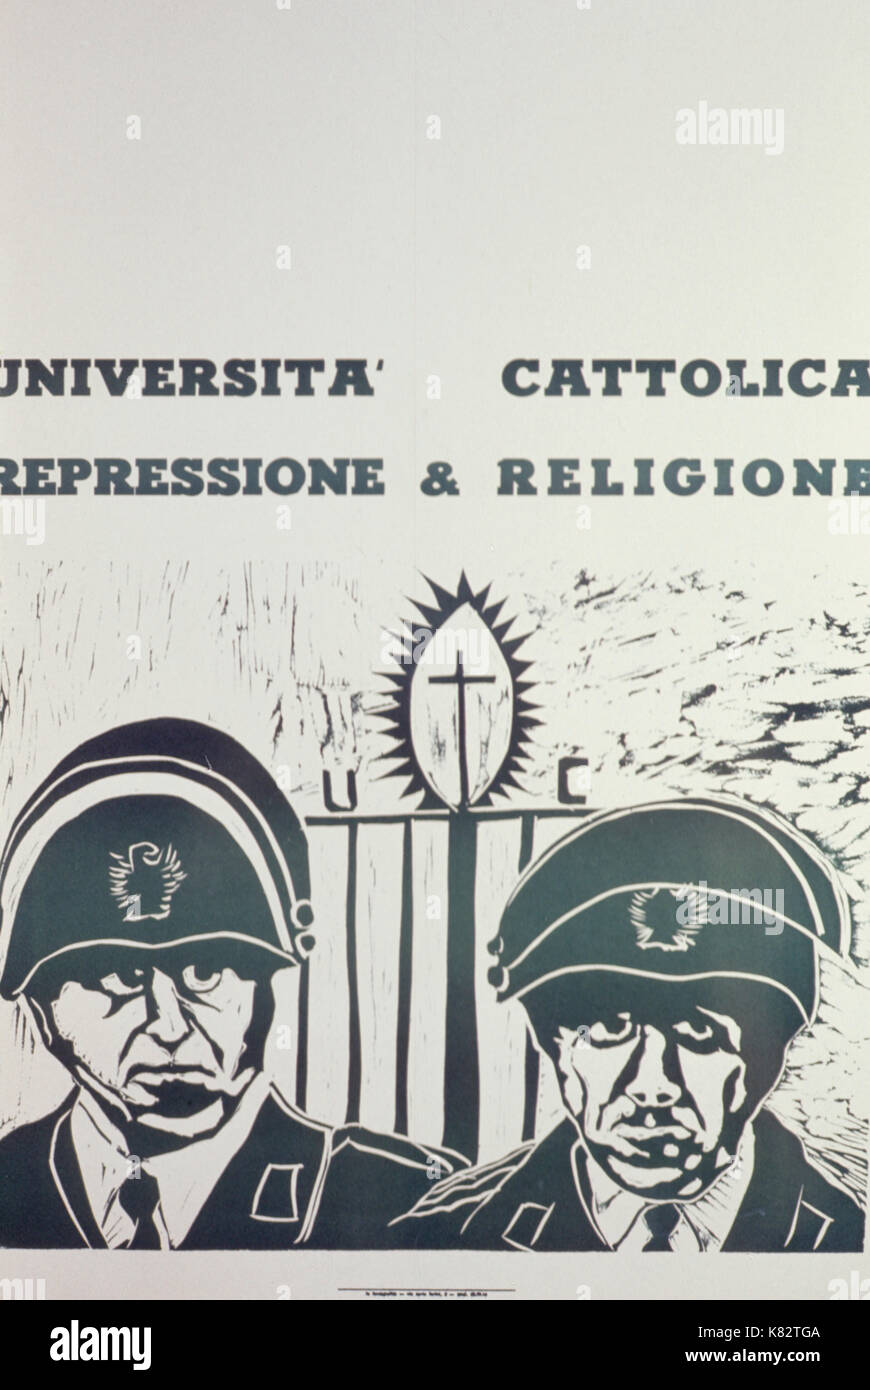 Catholic university repression & religion, poster - Stock Image